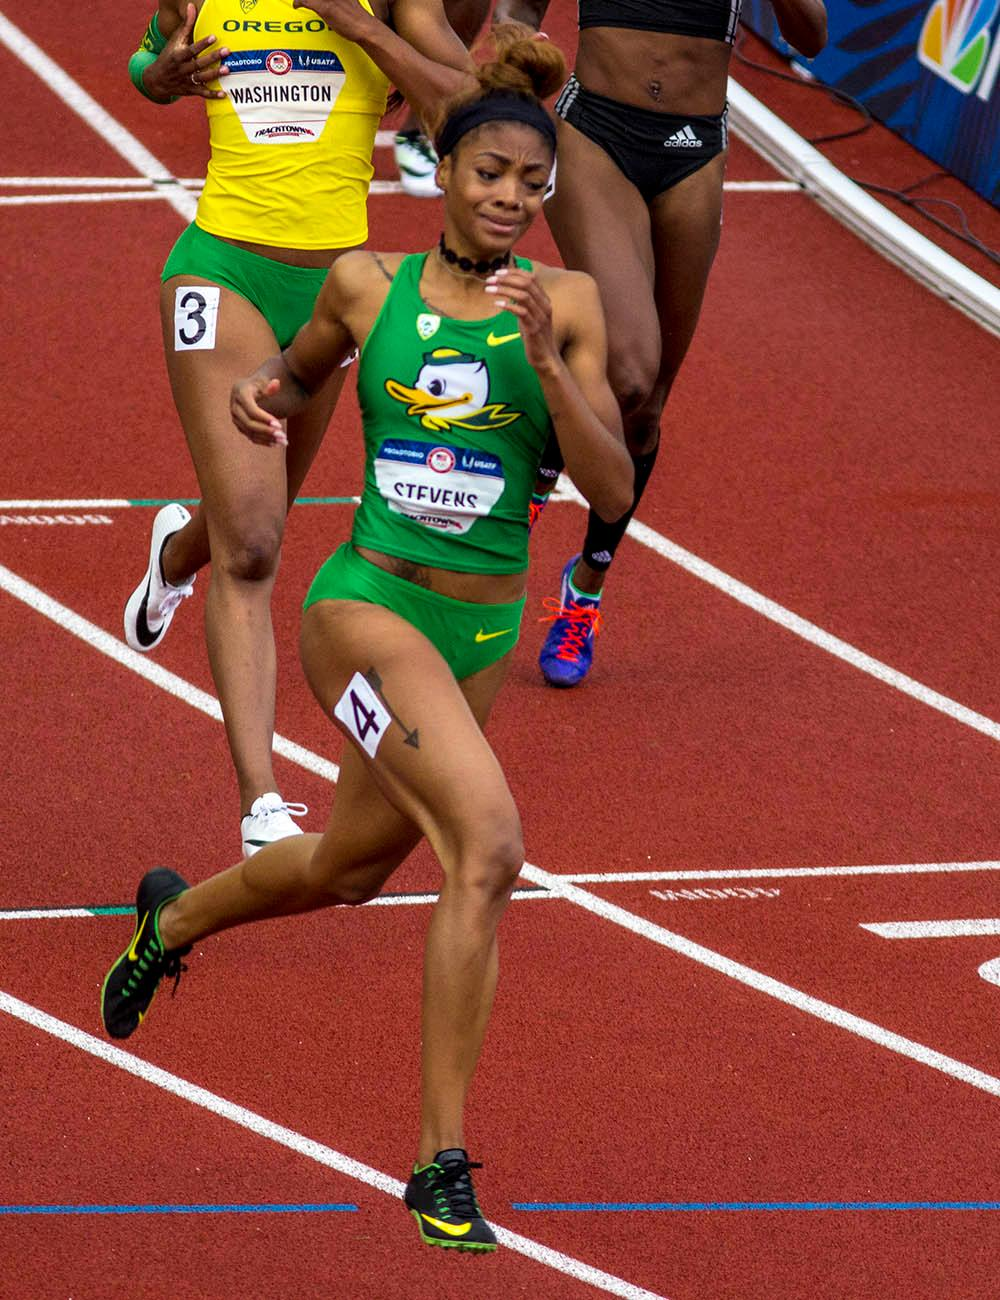 Oregon�s Deajah Stevens crosses the finish line of the Women�s 200m Dash. Stevens finished second with a time of 22.30. Day 10 of the U.S. Track and Field Trials concluded Sunday at Hayward Field in Eugene, Ore. The competition lasted July 1 through July 10. Photo by Amanda Butt